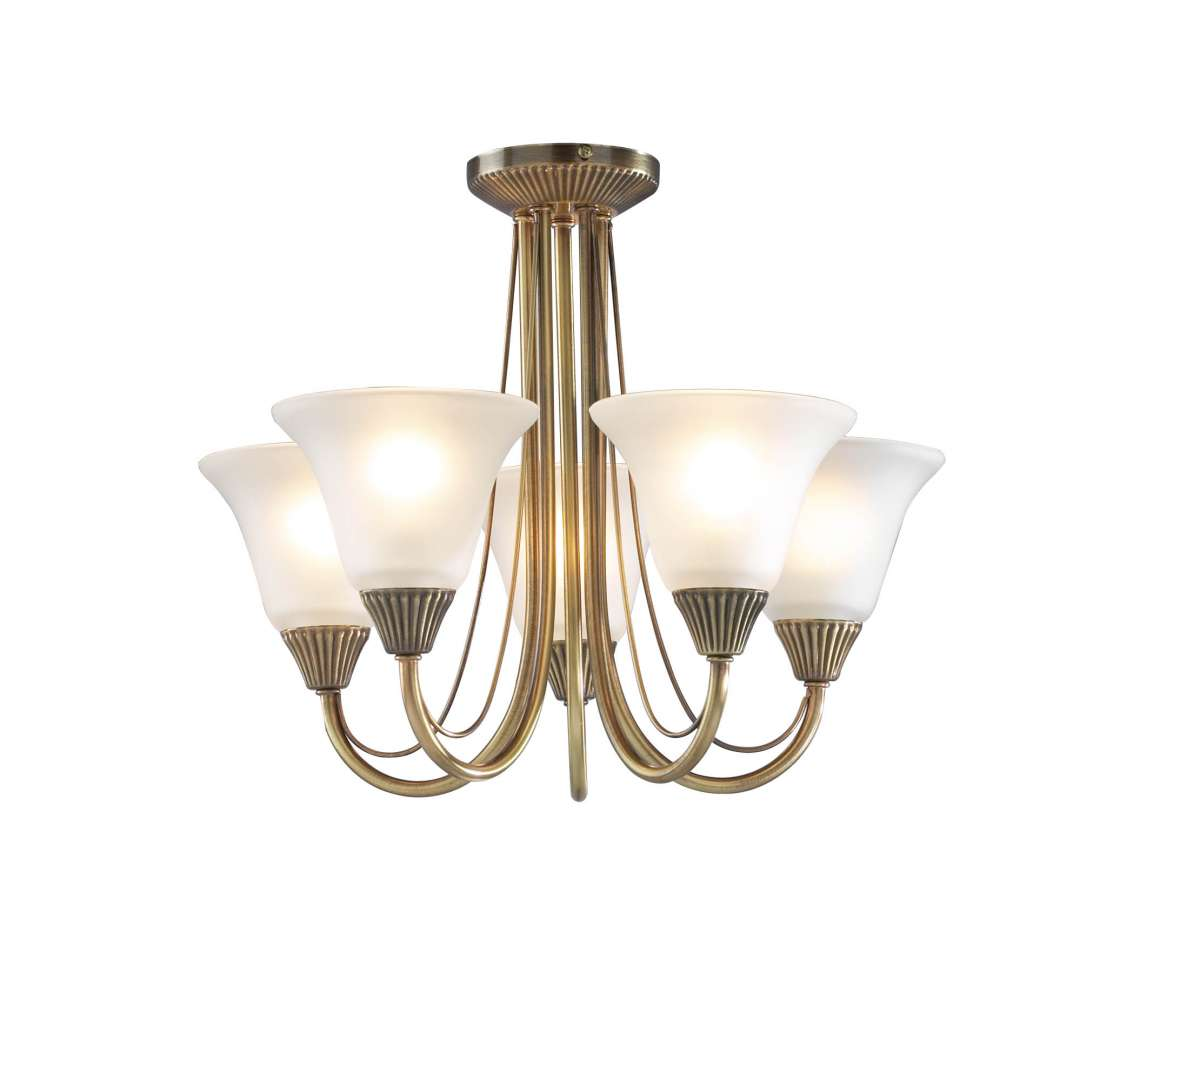 Dar Lighting Bos05 Boston 5 Light Antique Brass Semi Flush Fitting Jr Lighting